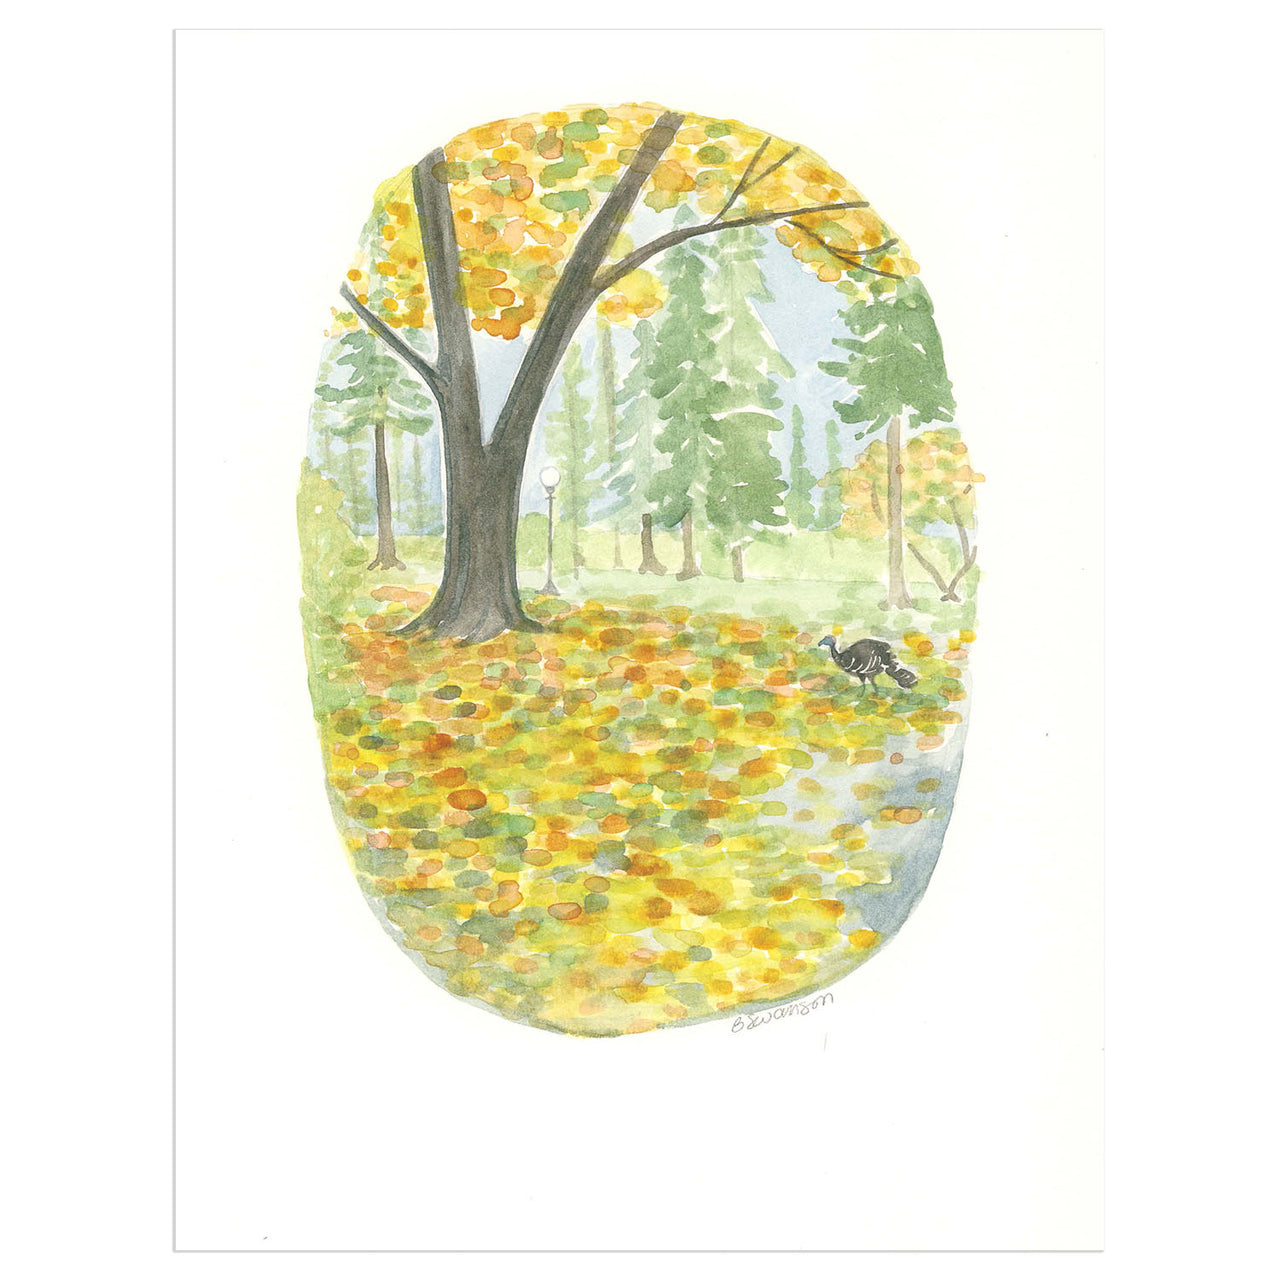 Hiawatha Park with the West Seattle Turkey Original Watercolor Painting